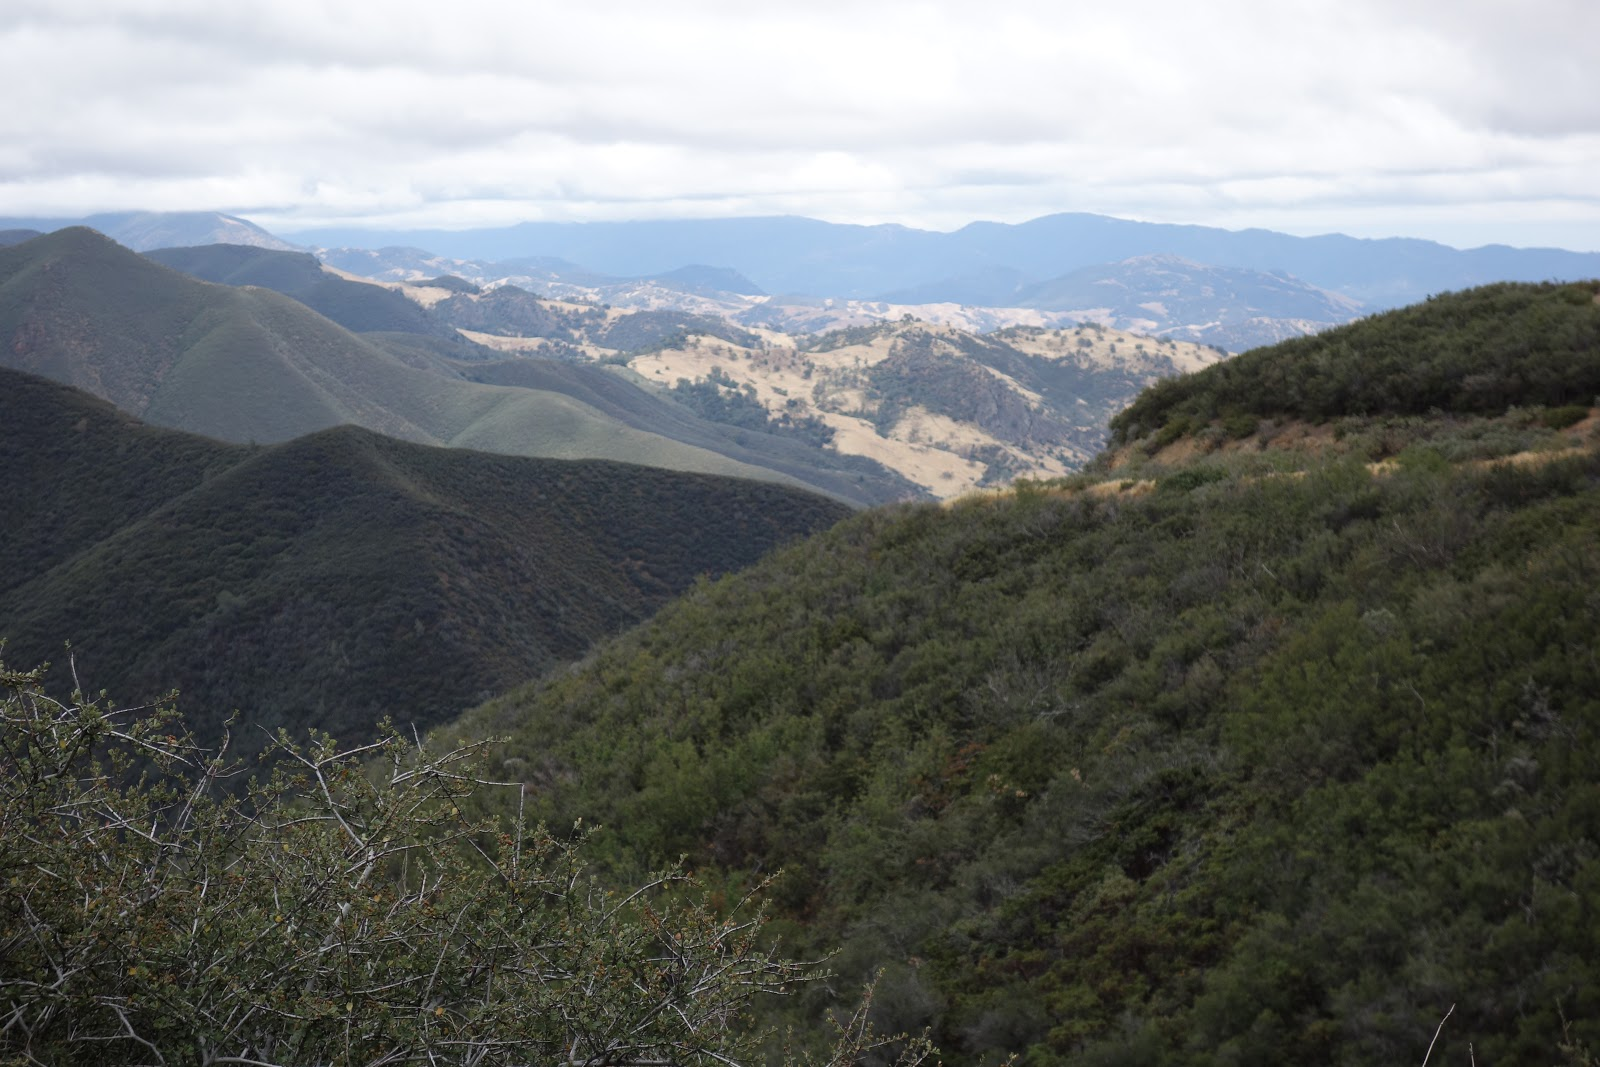 View of Santa Ynez Mountains from Happy Canyon Road on ride by bike